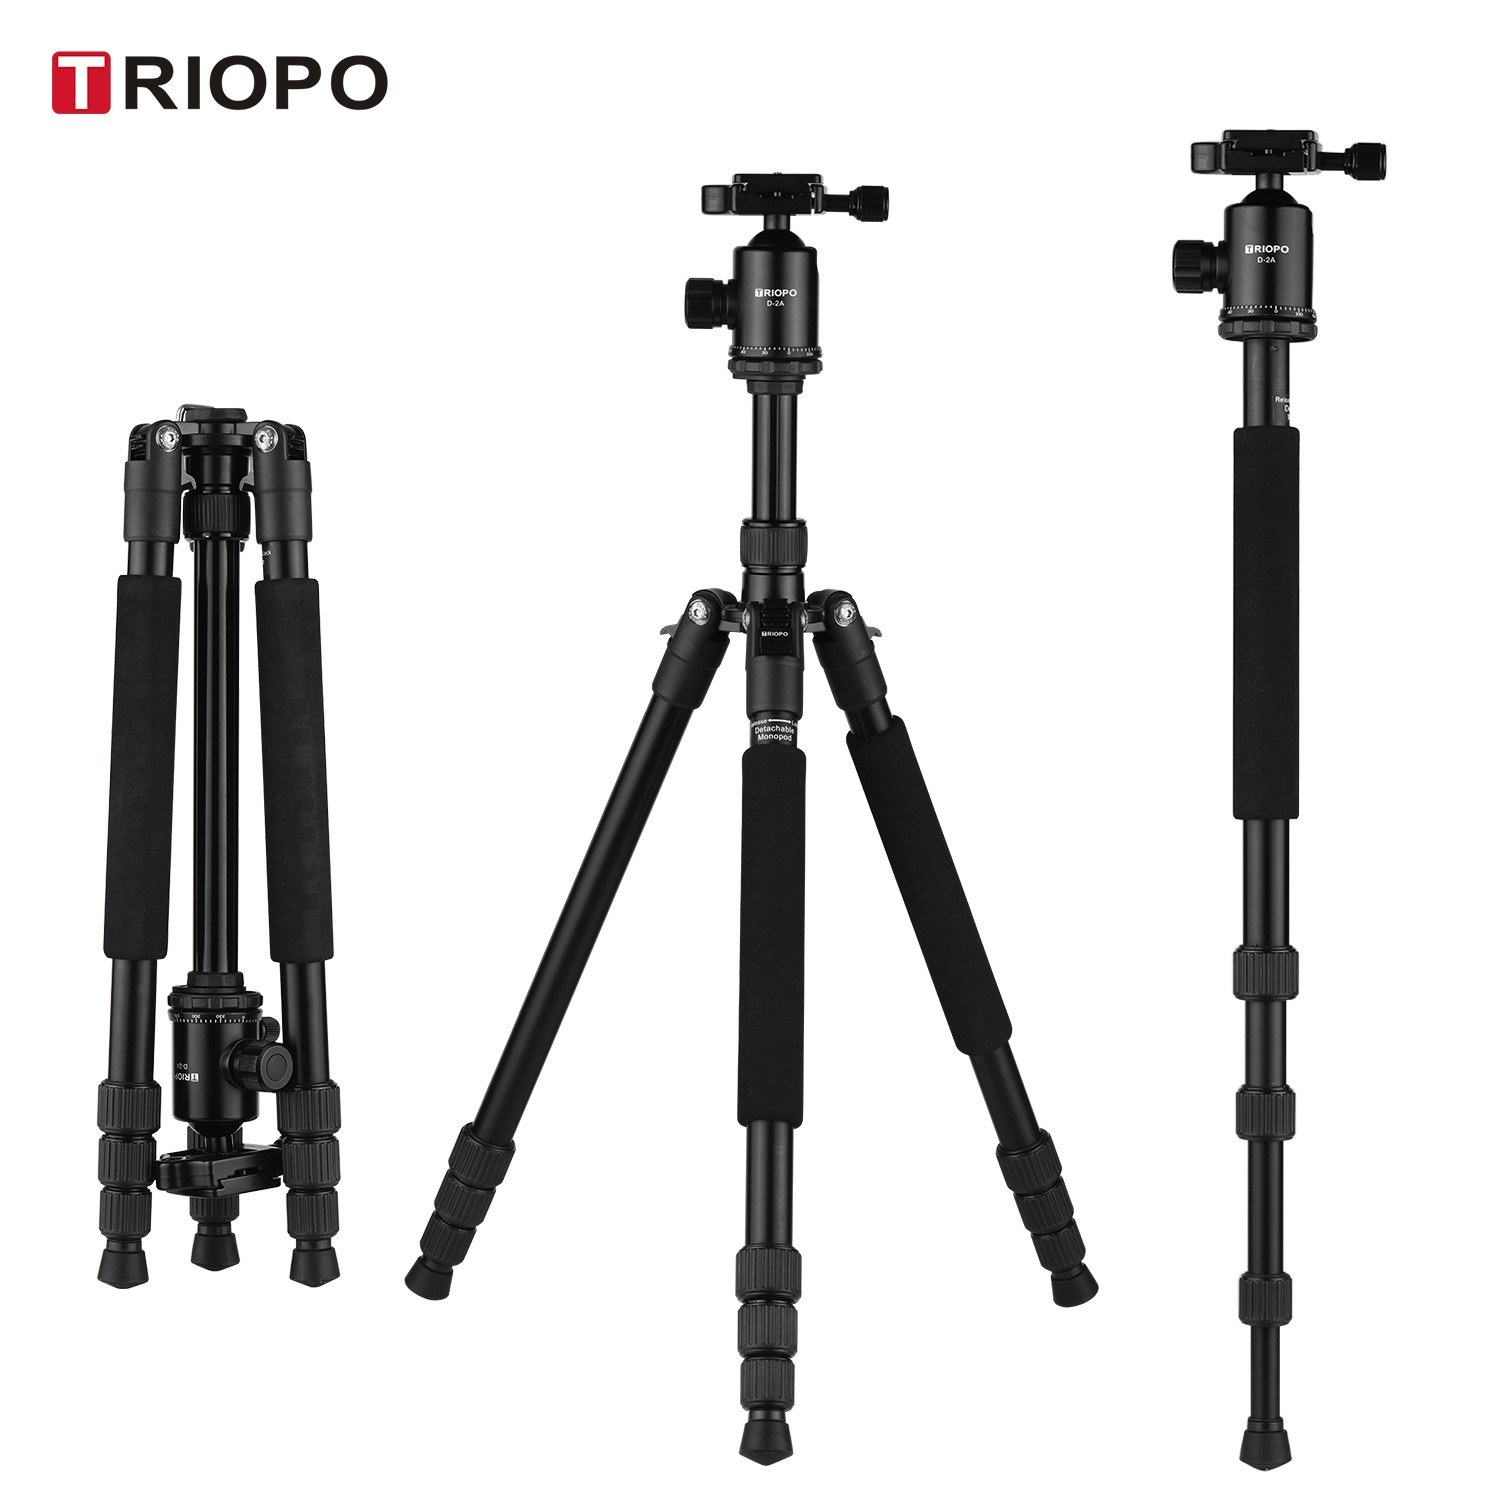 TRIOPO M2508 Aluminum Alloy Camera Tripod Monopod with D-2A 360° Panoramic Ball Head 4-Section Extendable Max. Height 164cm Compatible with Canon Nikon Sony DSLR ILDC Cameras Max. Load Capacity 10kg